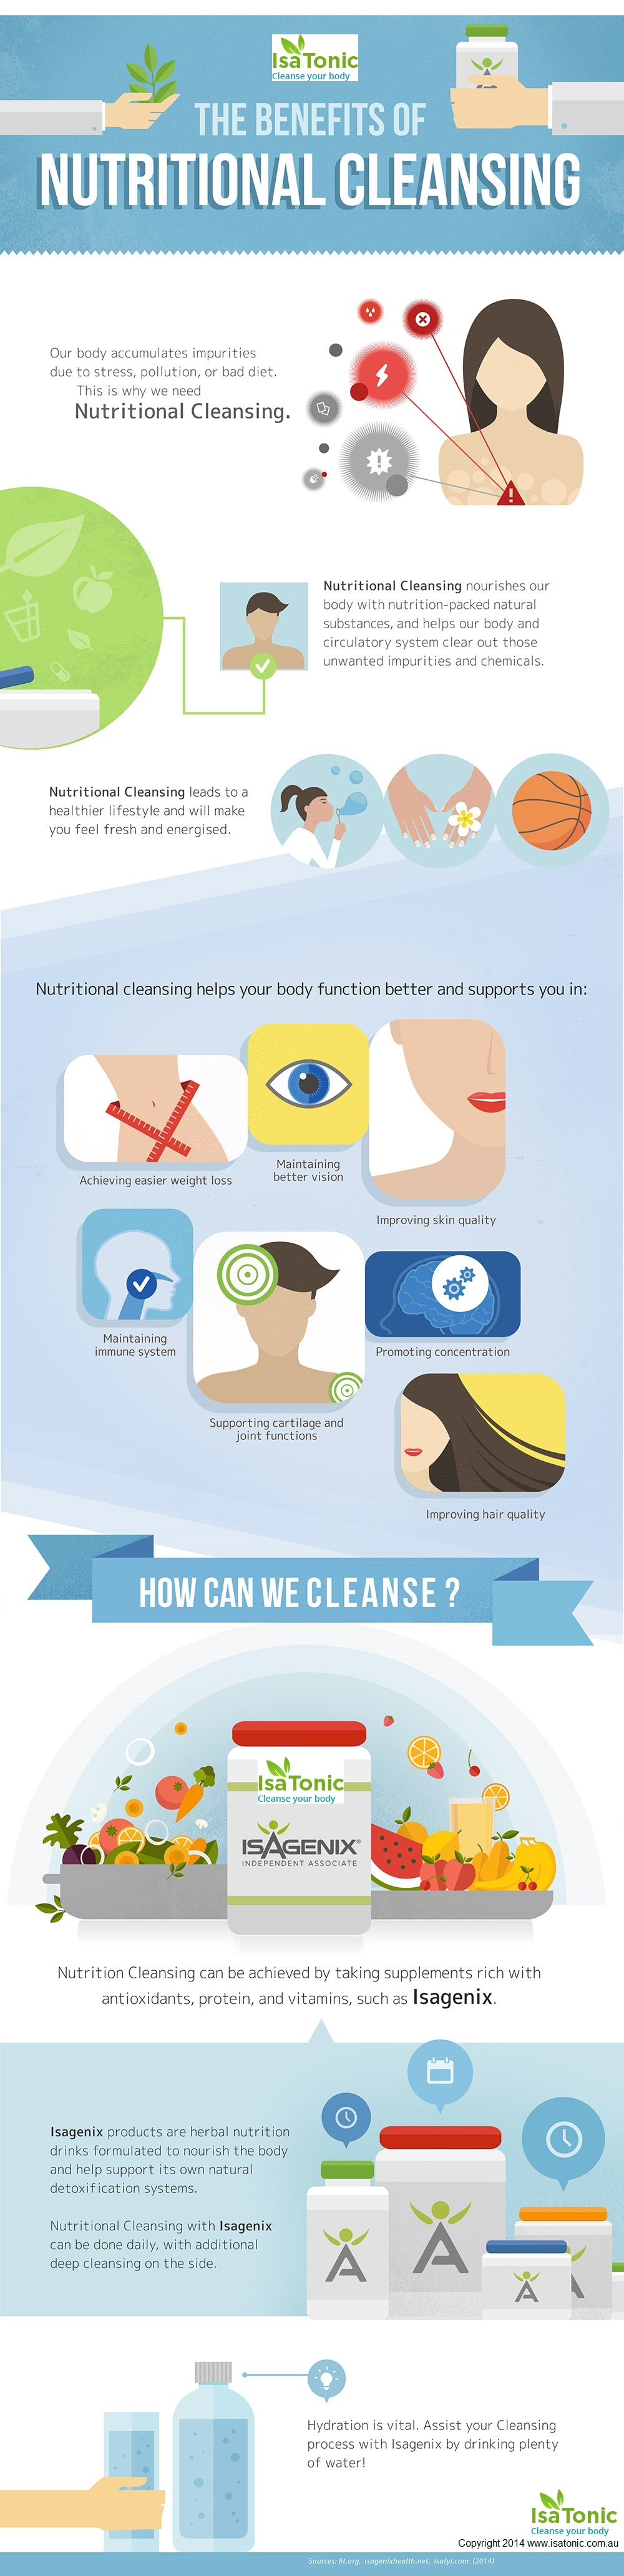 Benefits of Nutritional Cleansing